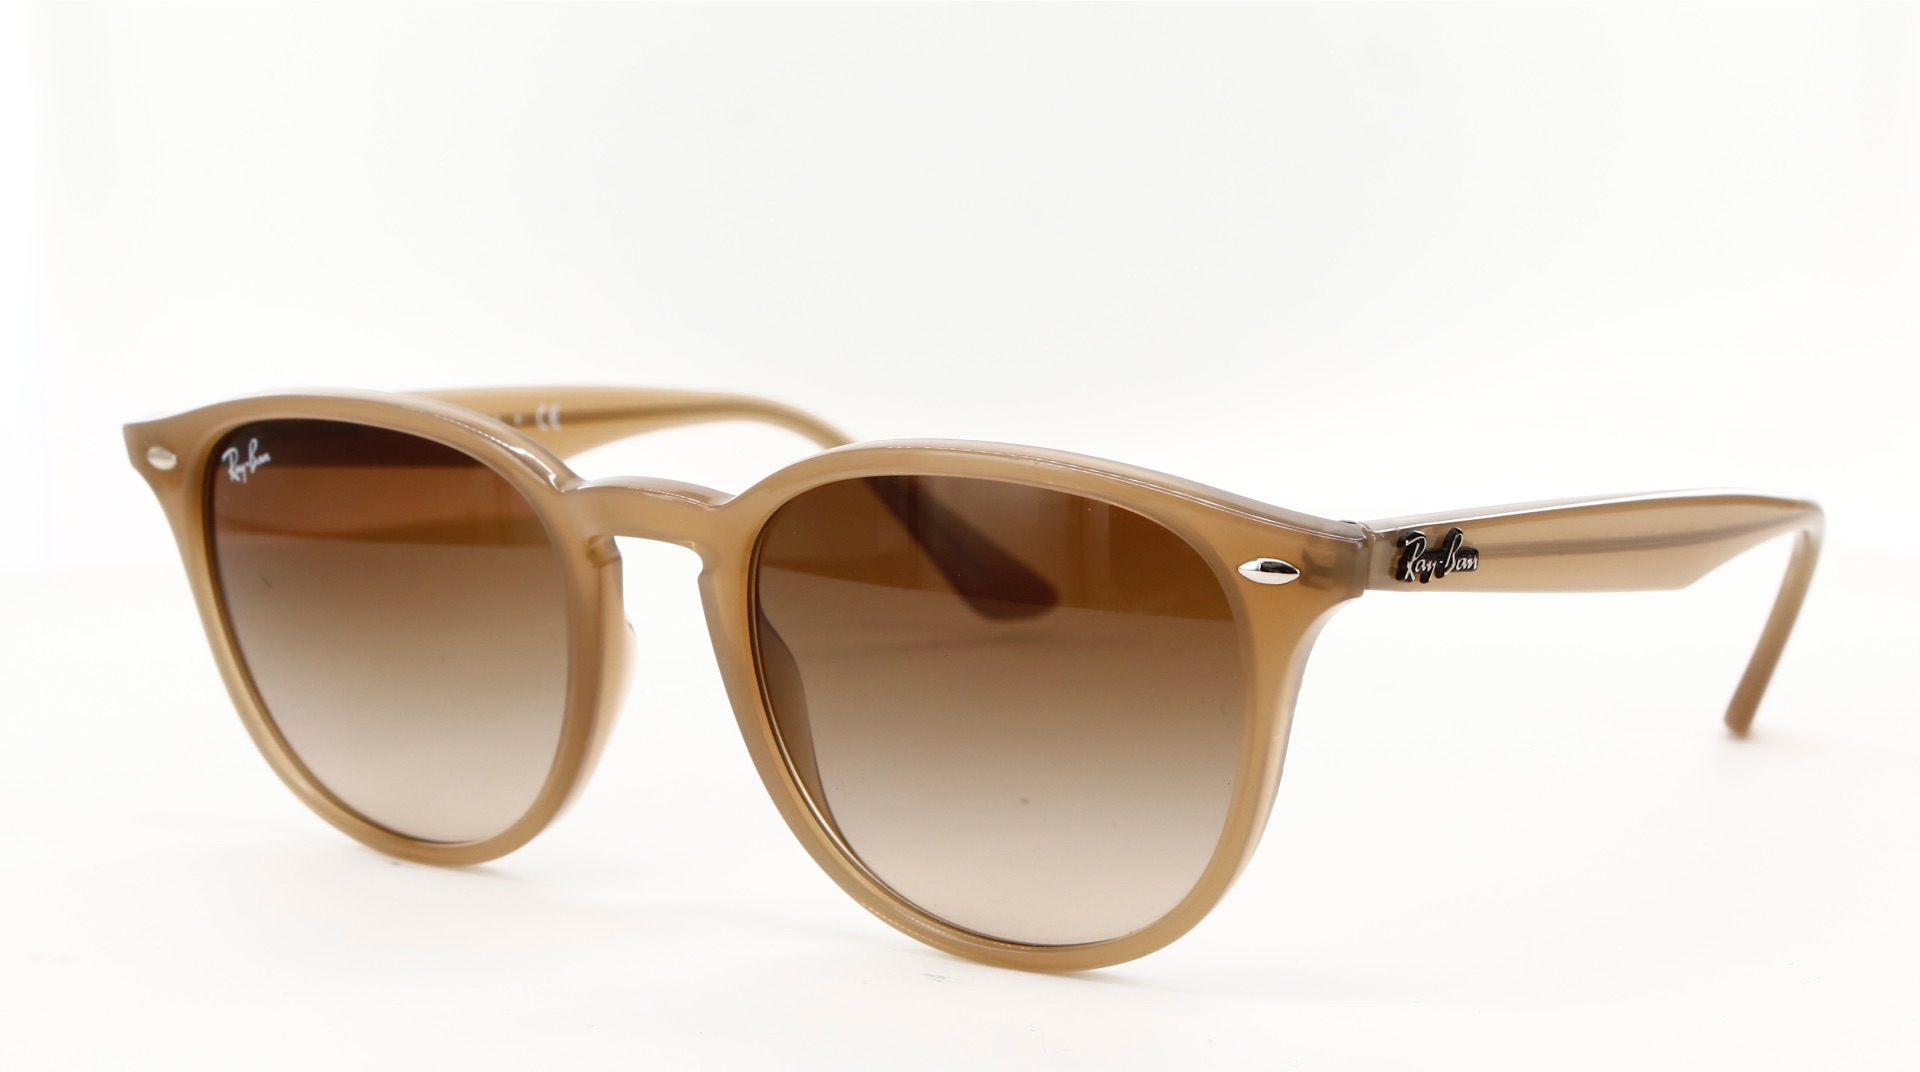 Ray-Ban - ref: 76881